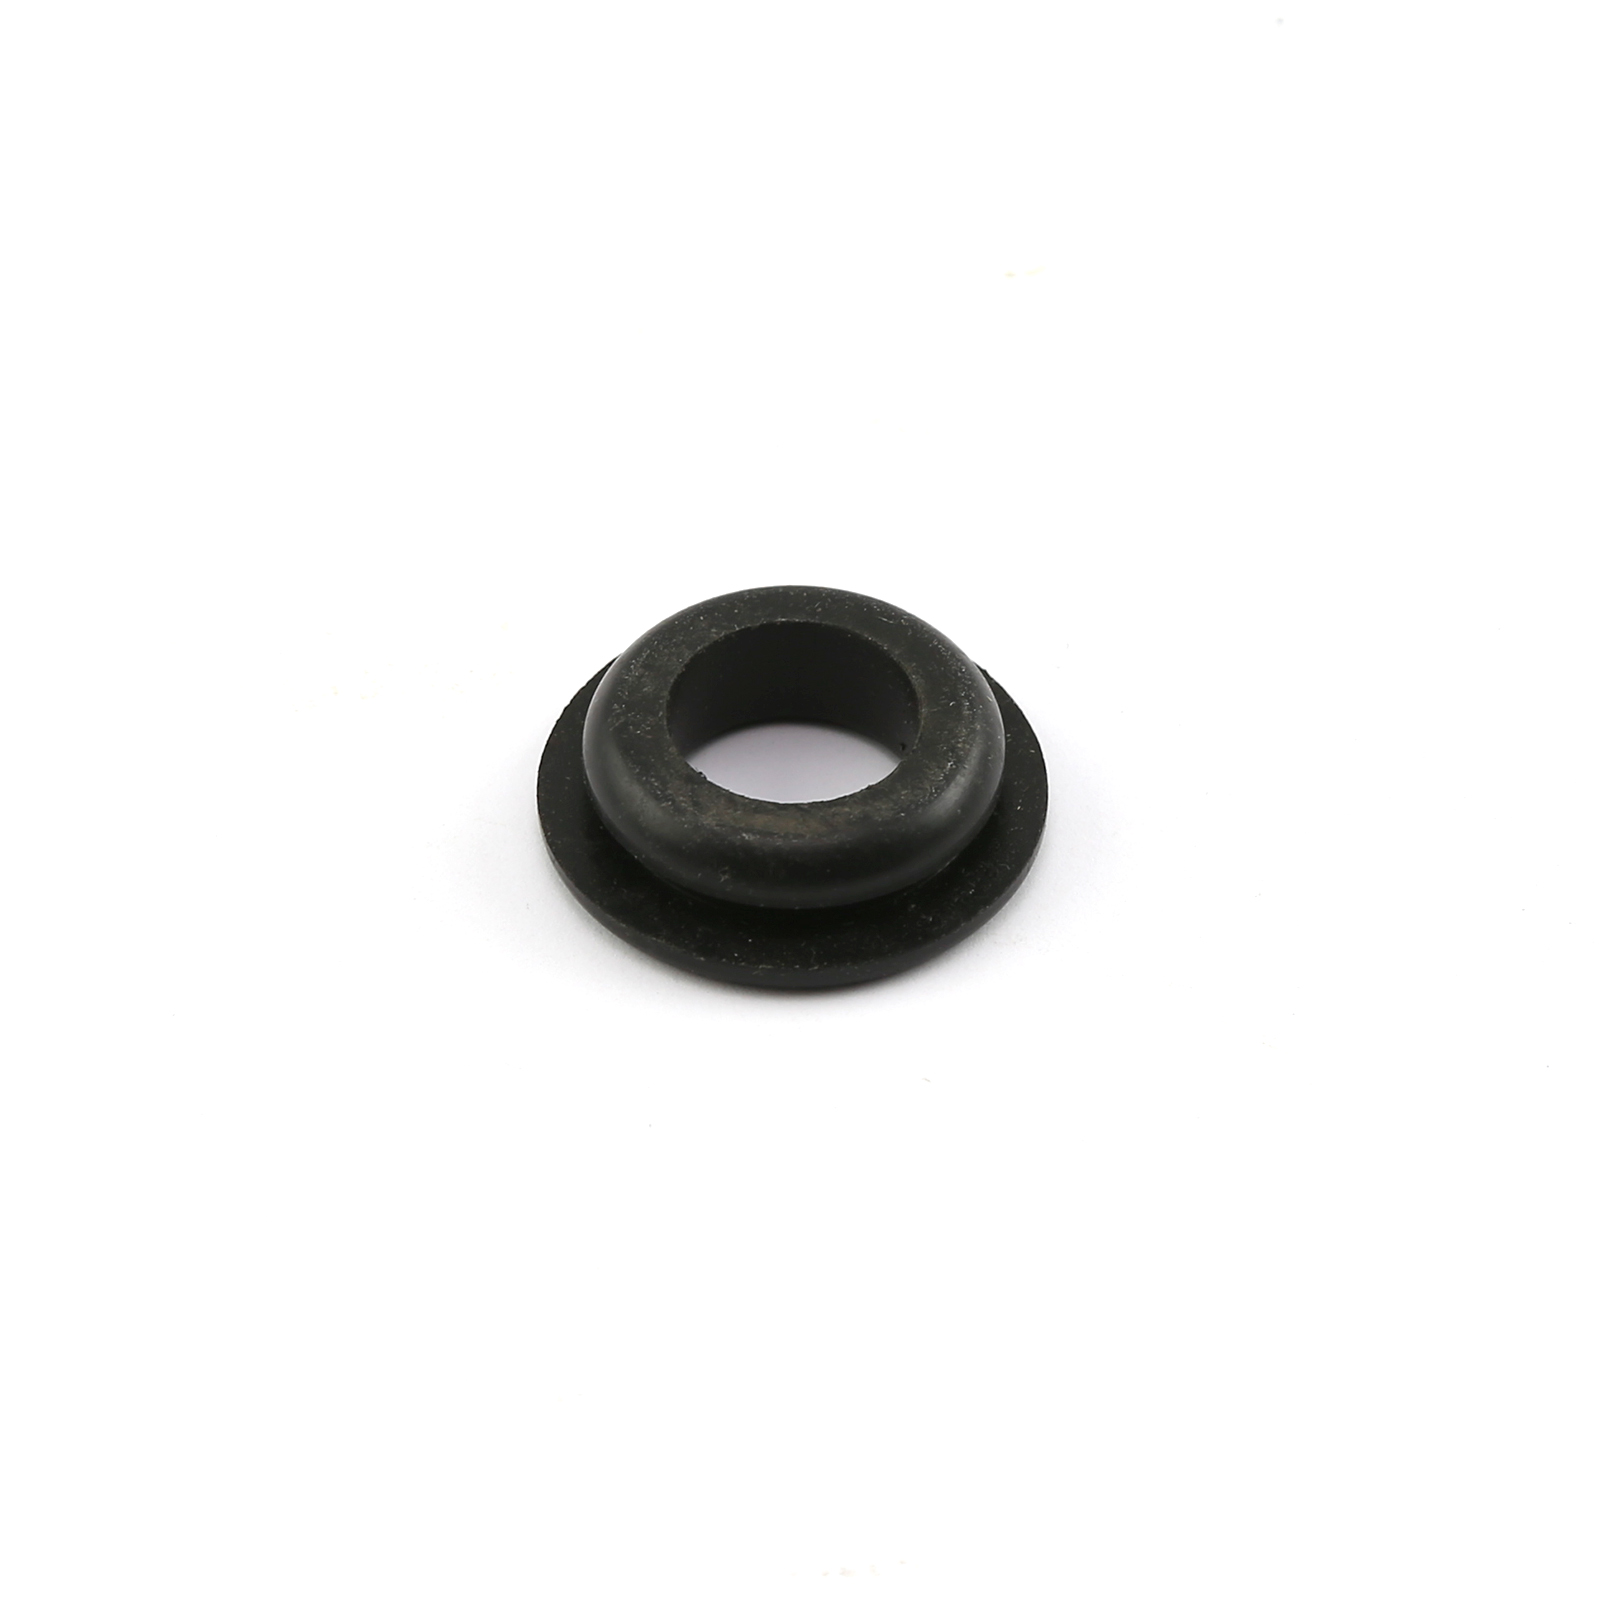 "Rubber Breather Grommet - 9/16"" Id - 1"" Od"